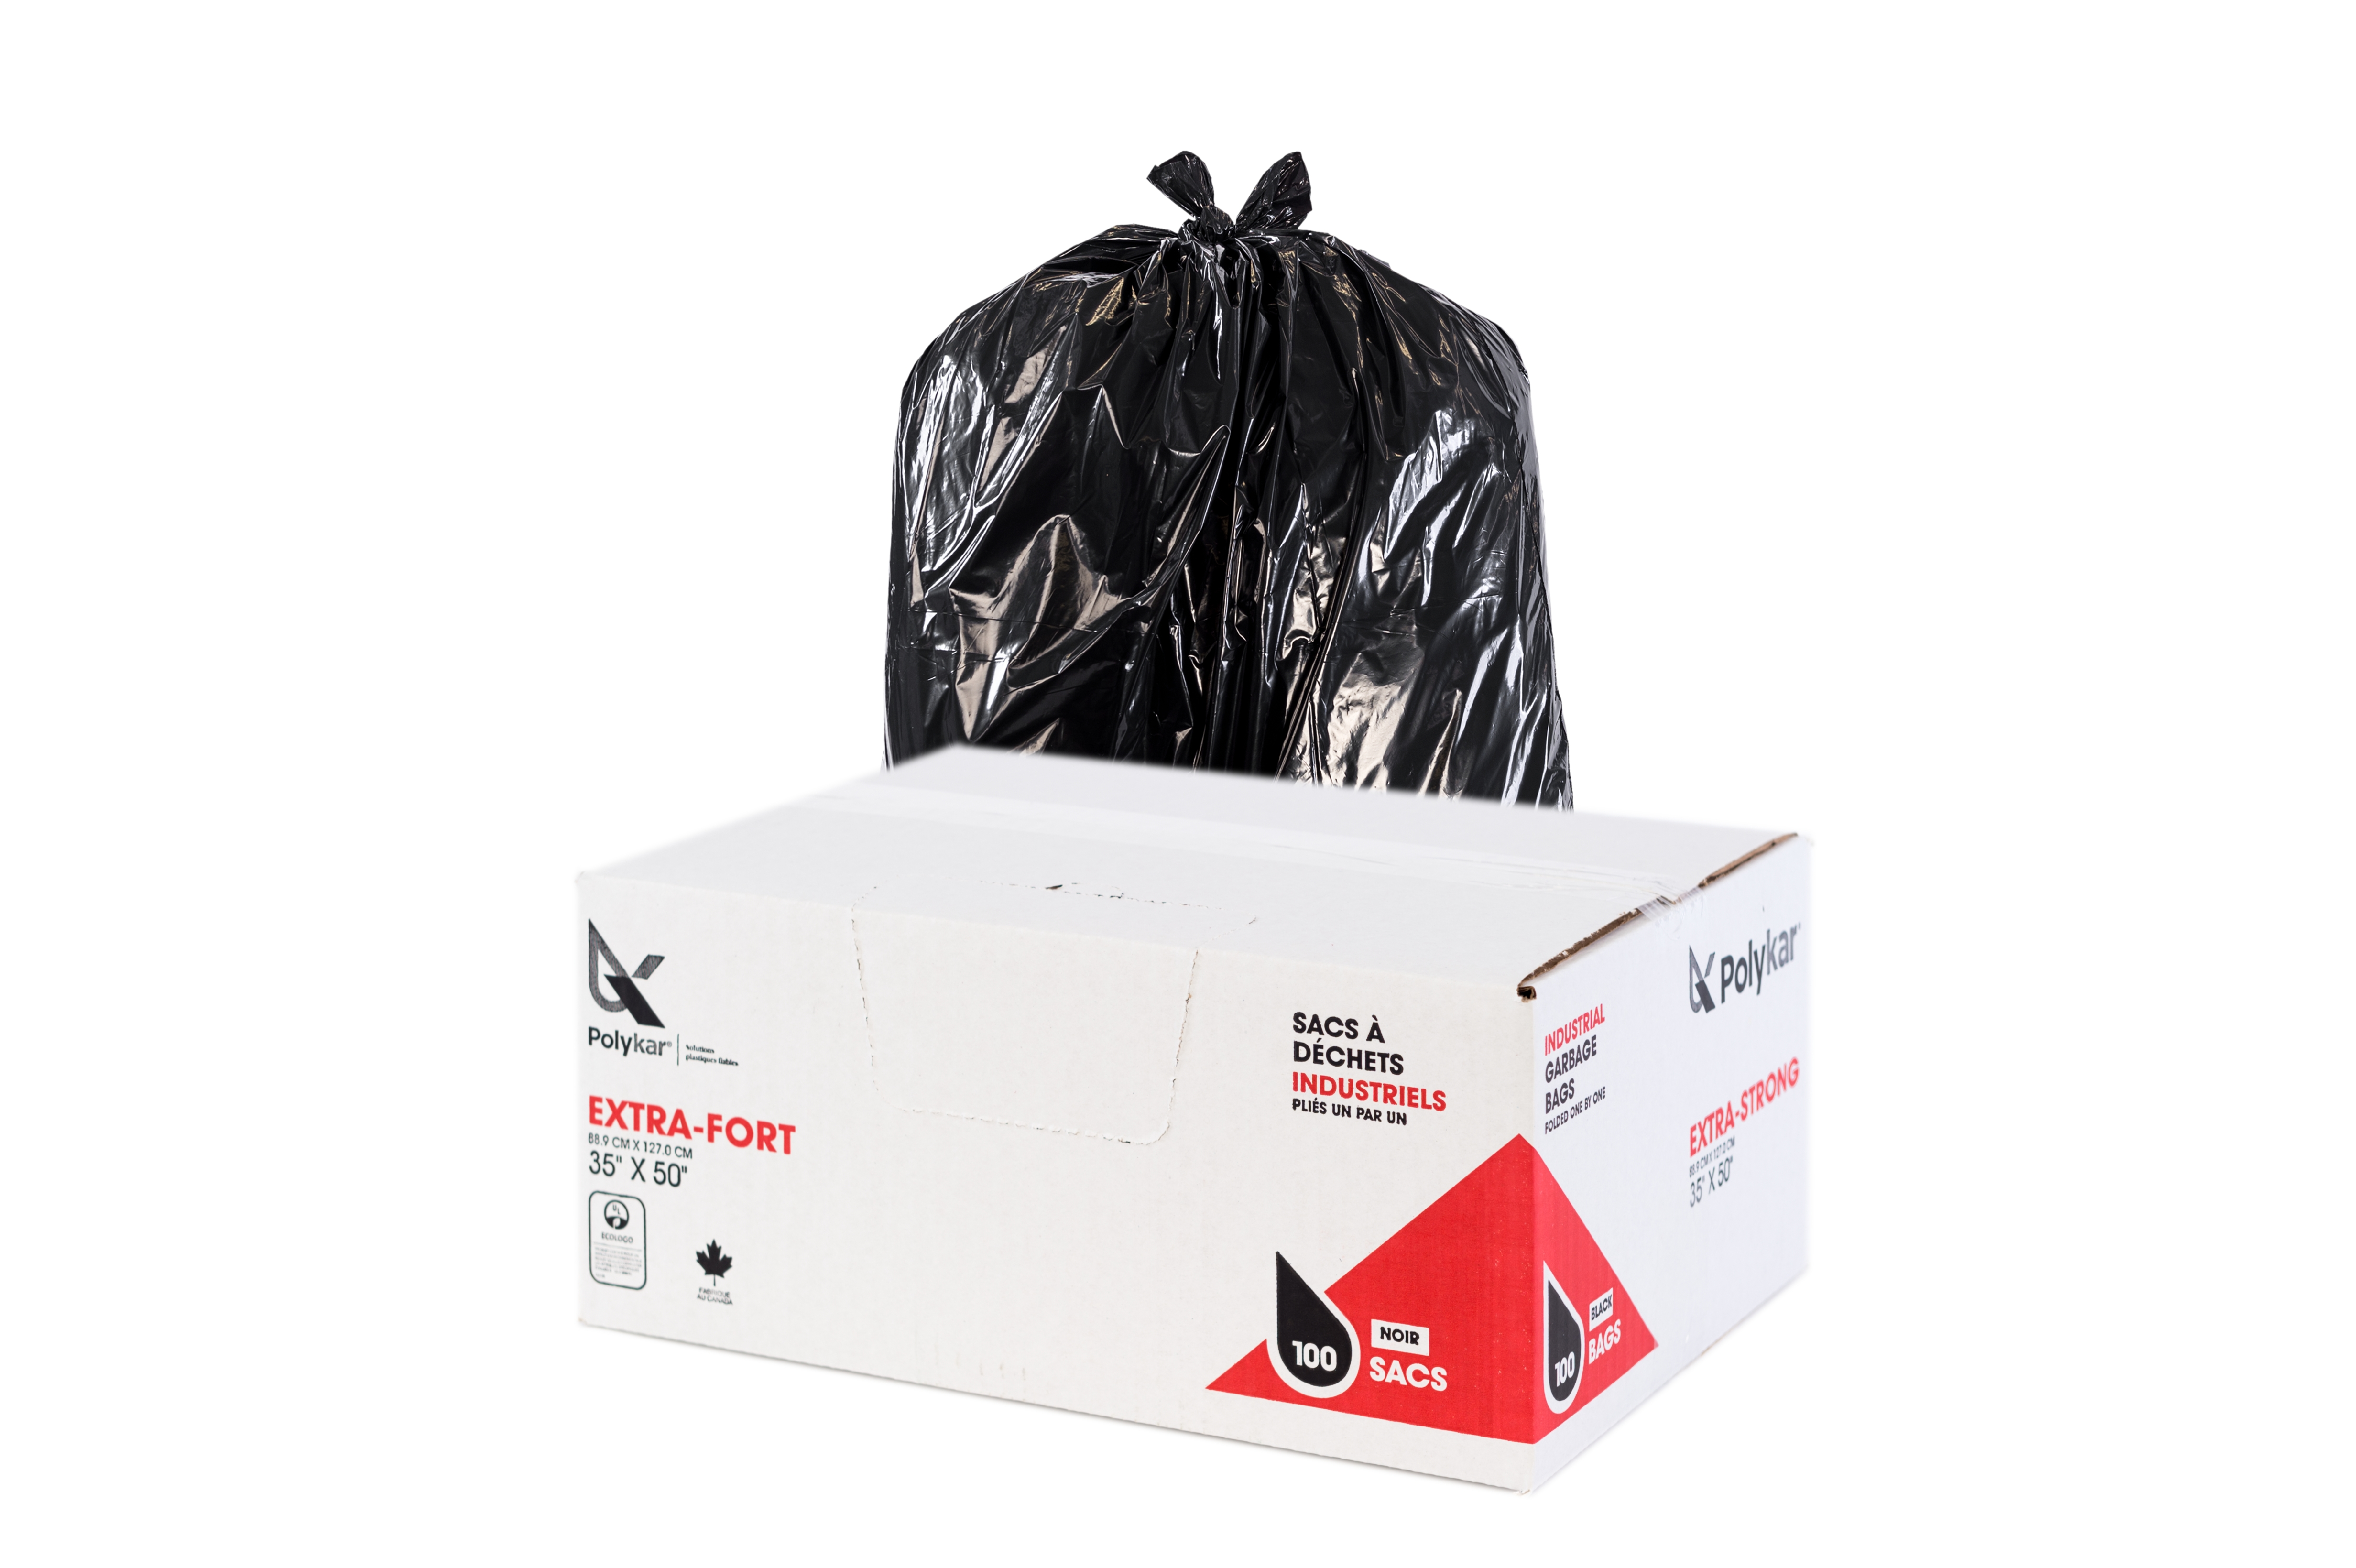 Post Commercial Plastic Waste Recycling Product